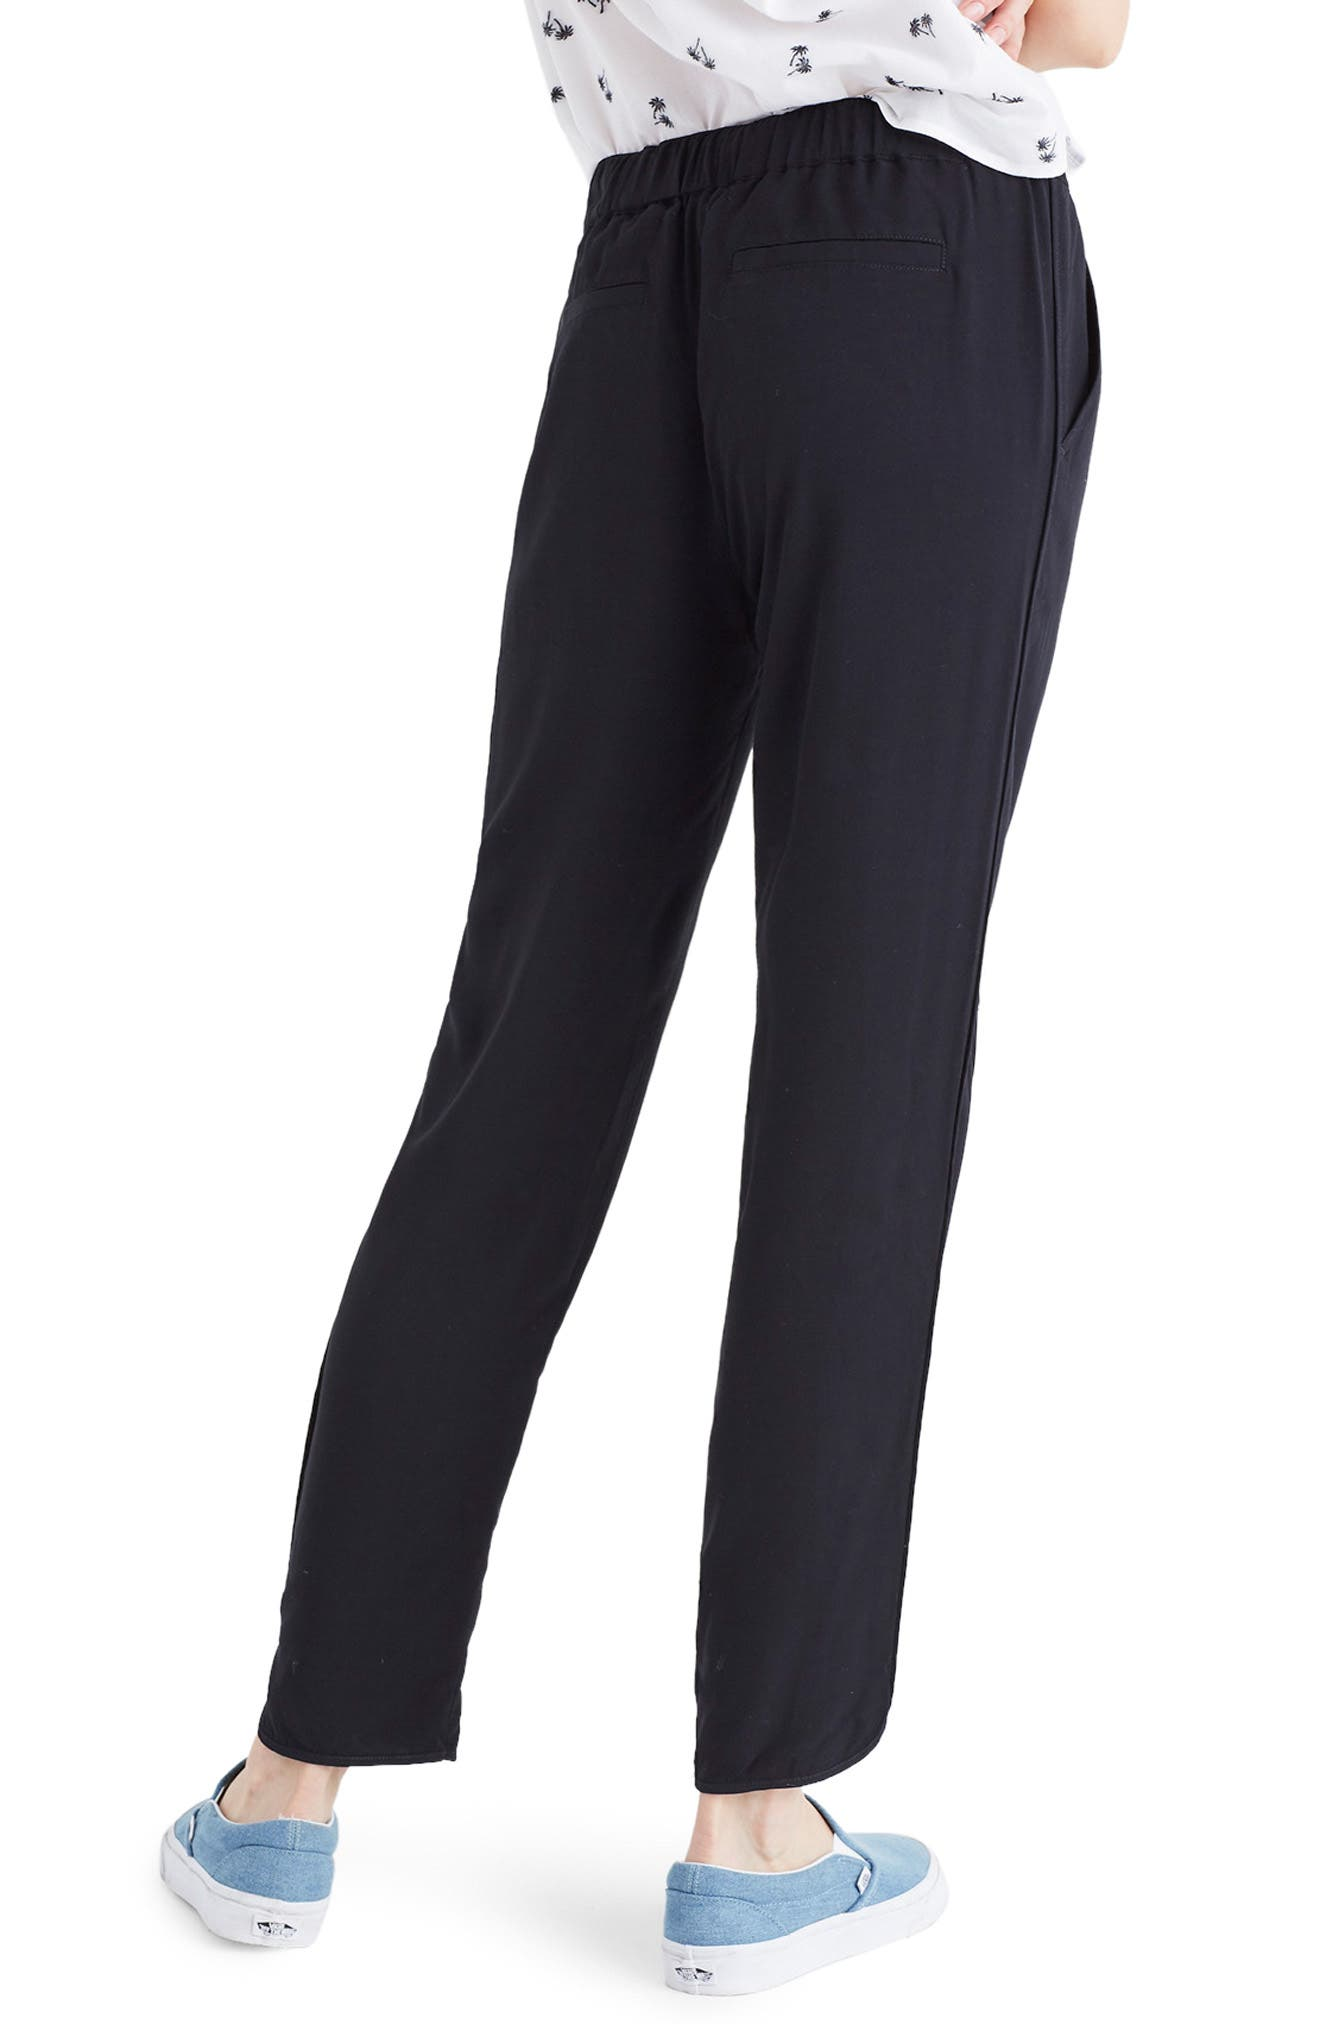 MADEWELL,                             Track Trousers,                             Alternate thumbnail 2, color,                             TRUE BLACK